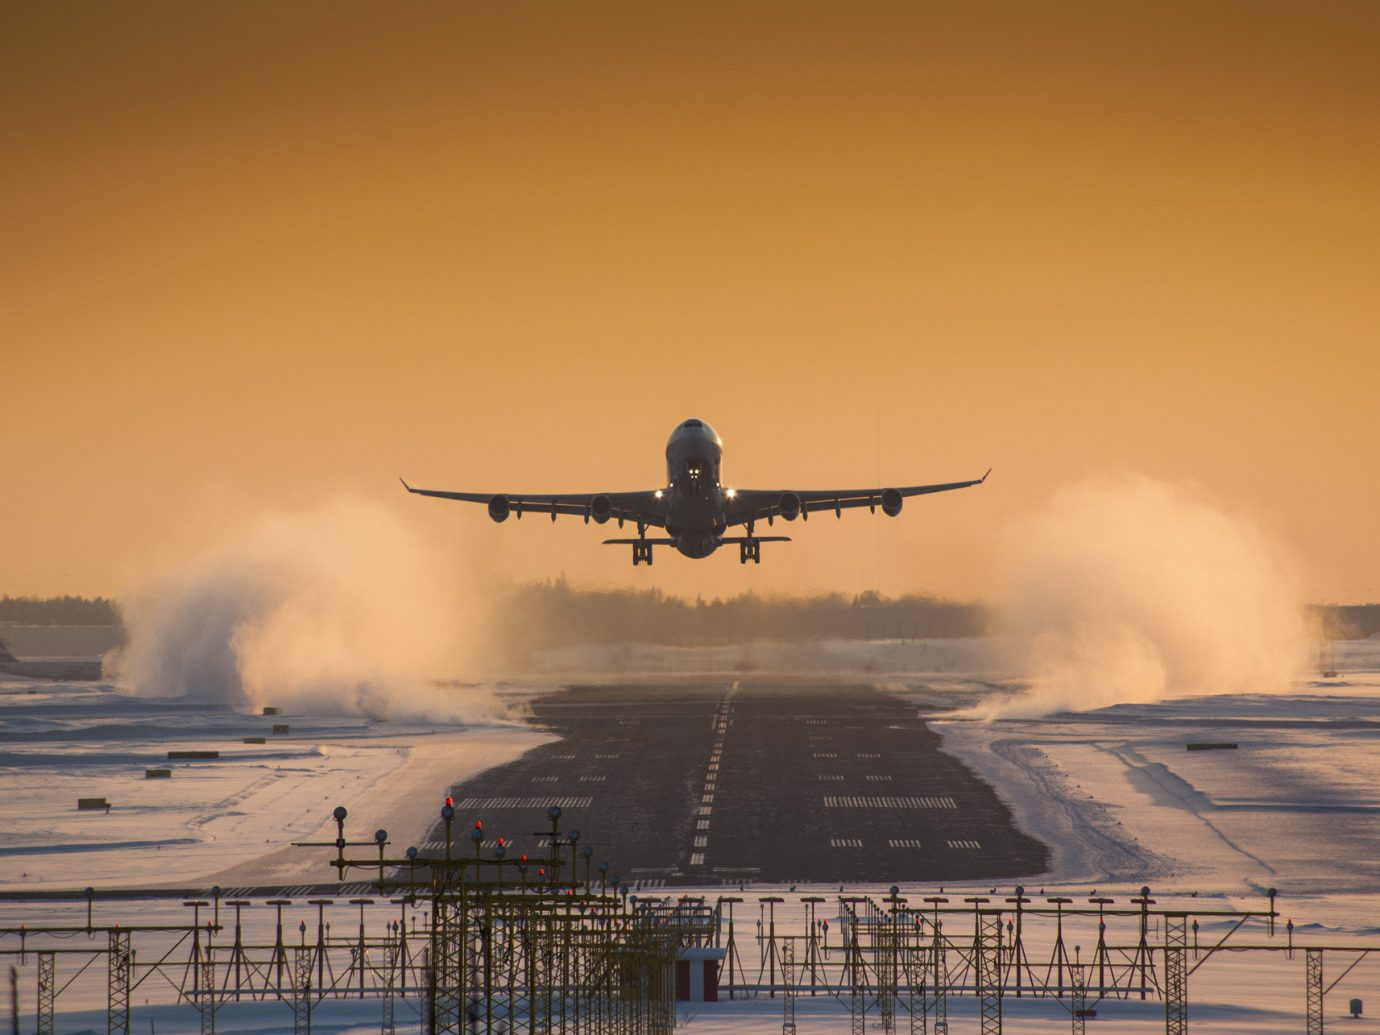 aerial airplane airport flying landing road snow Sunset transportation Travel Tips Winter outdoor sky plane smoke atmospheric phenomenon airline coming aviation aircraft atmosphere of earth airliner vehicle morning flight air force sunrise takeoff wing runway engine